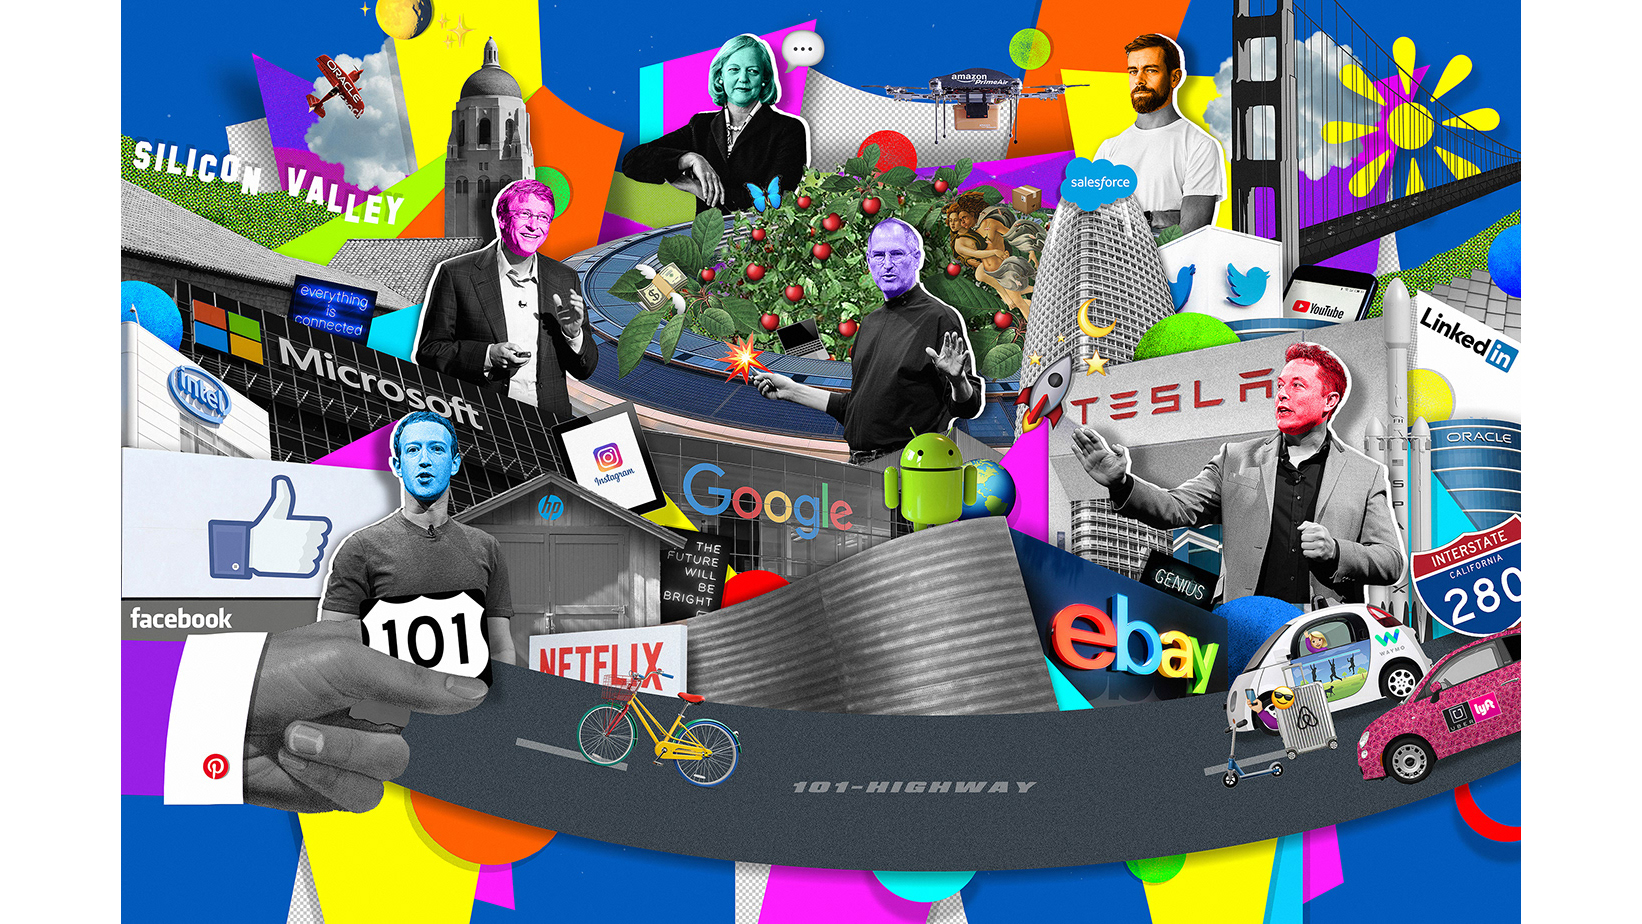 Collage piece depicting Silicon Valley